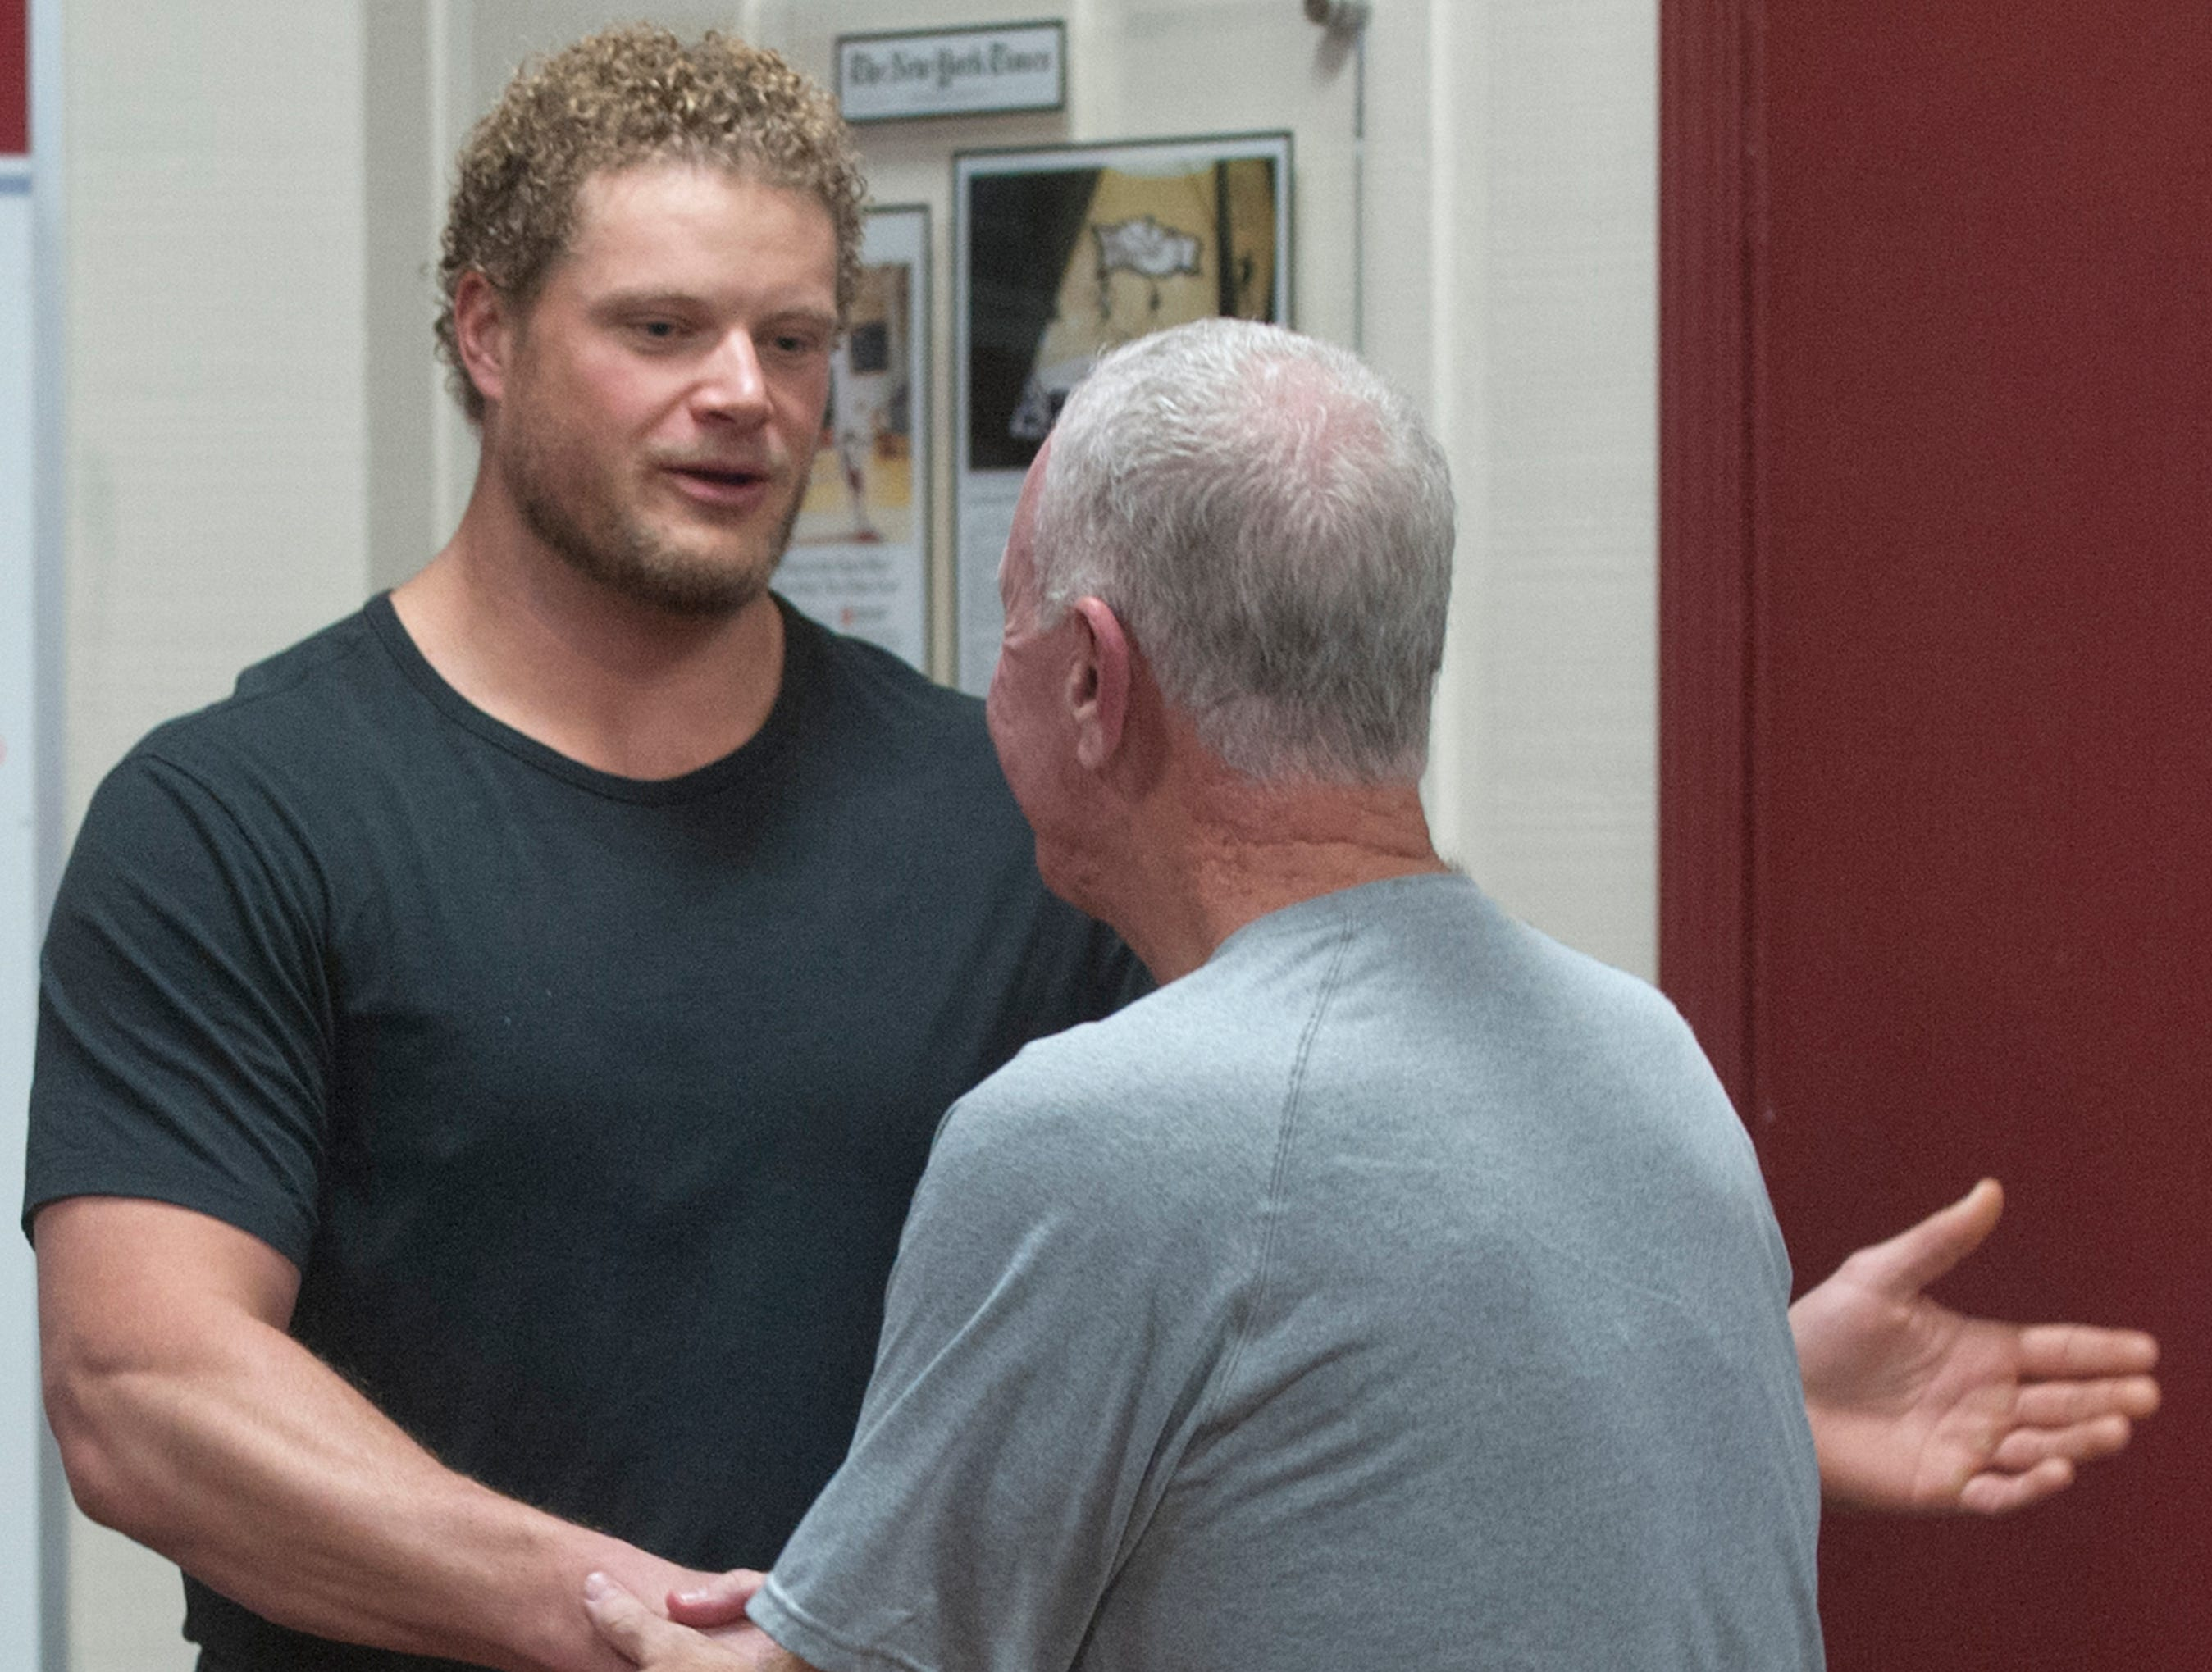 Former Buffalo Bills center and University of Louisville football player Eric Wood is thanked by Bellarmine head basketball coach Scott Davenport after Davenport introduced him to the team in the locker room following practice. Wood was at the school to give an inspirational talk to the players.18 December 2018